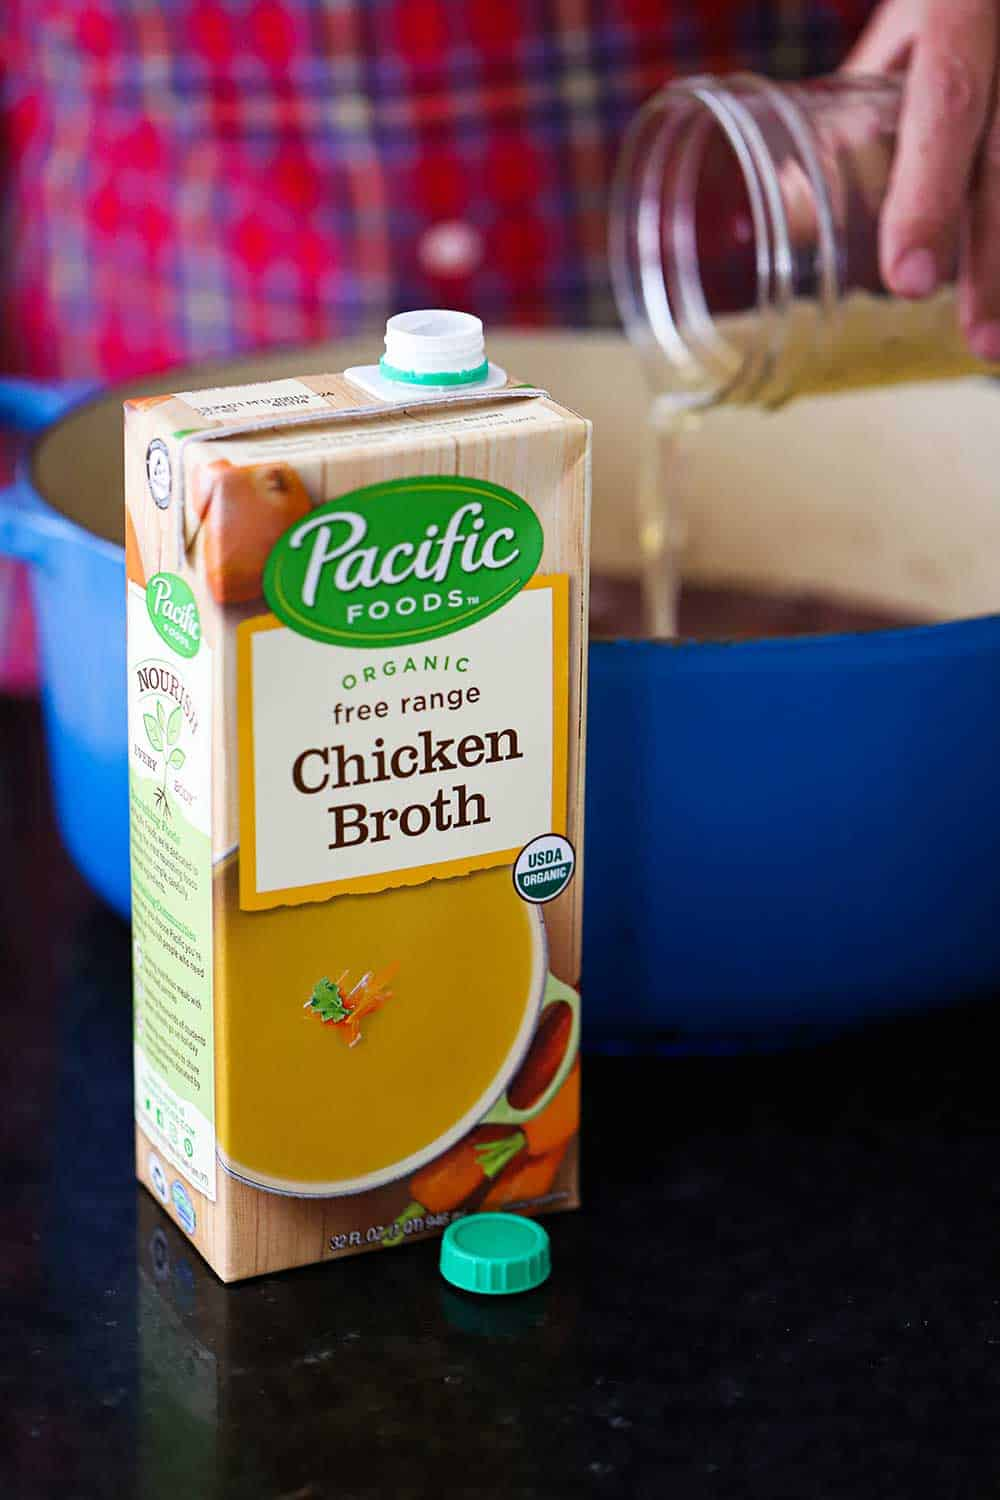 A box of Pacific Food Chicken Broth in front of a blue Dutch oven with a hand pouring broth from a jar into the pot.